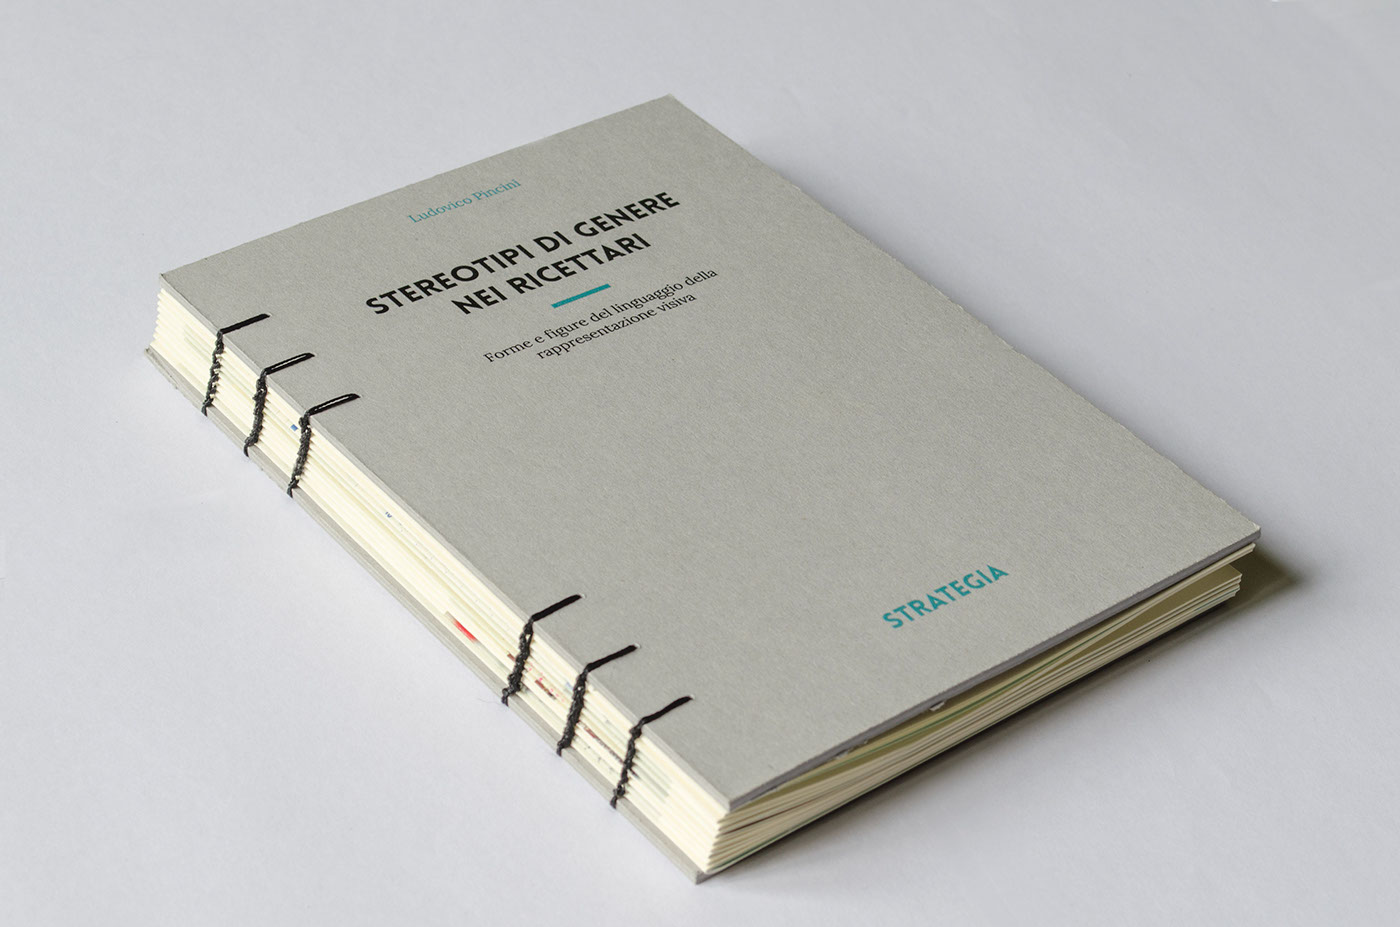 bachelor degree thesis politecnico stereotypes Gender recipe books editorial bending Coptic Stich